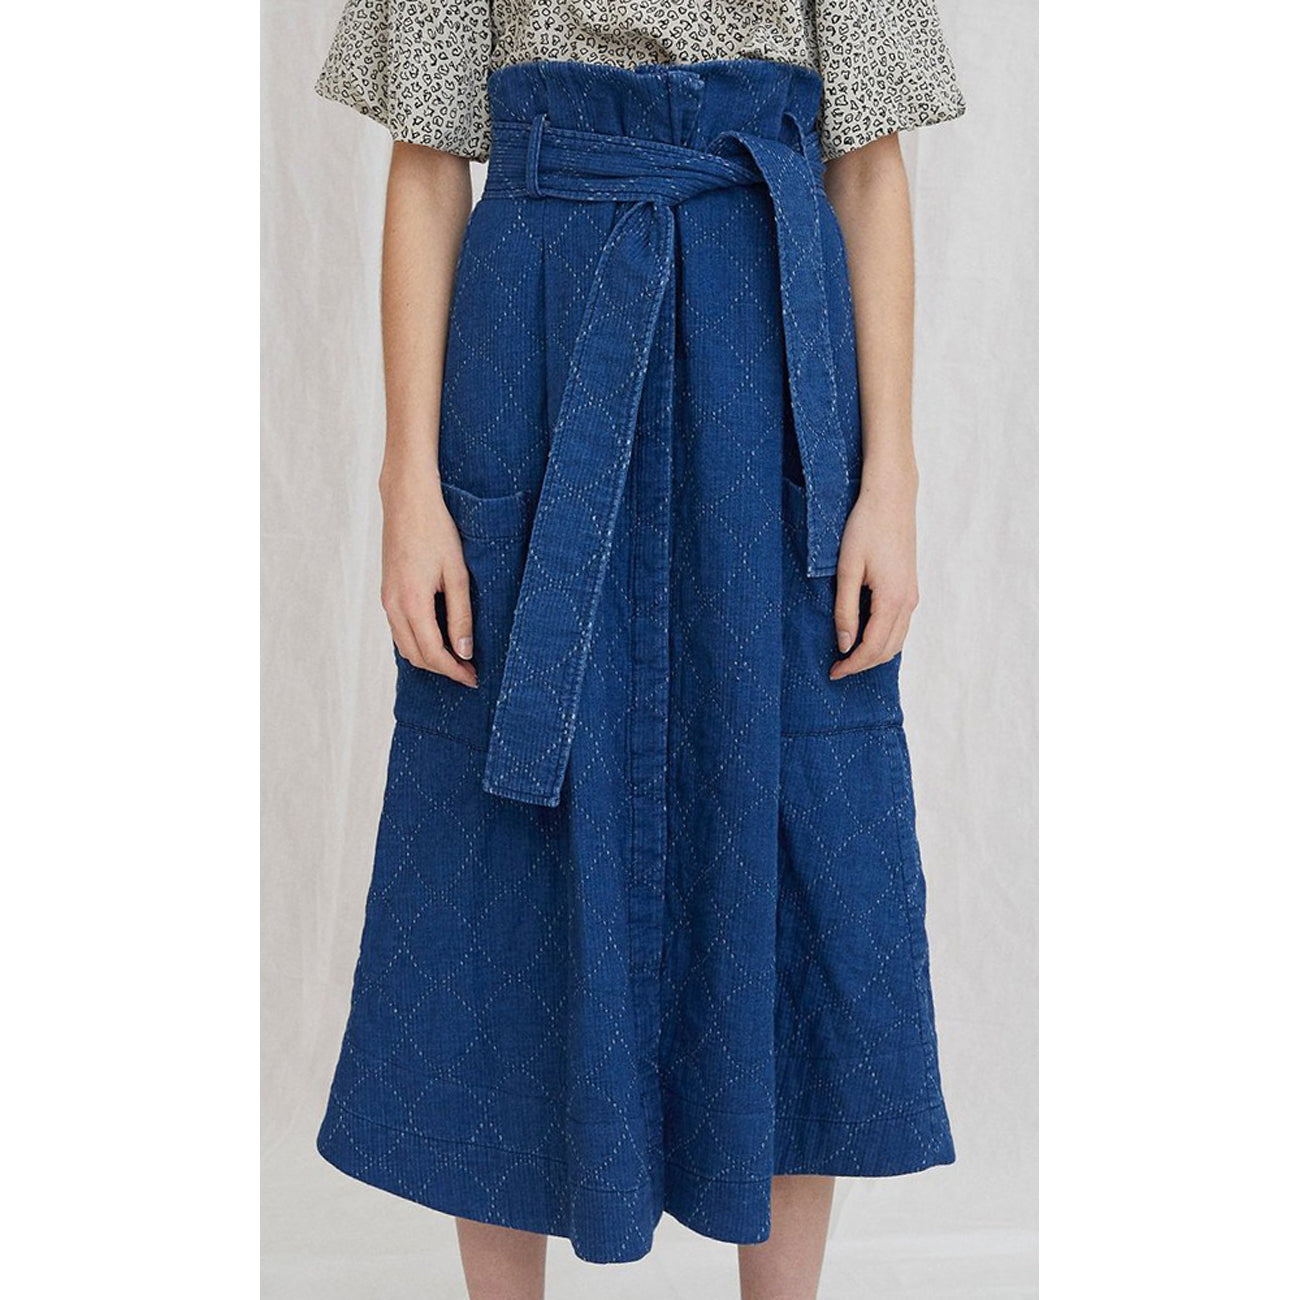 Whit Quilted Denim Pocket Skirt in Indigo